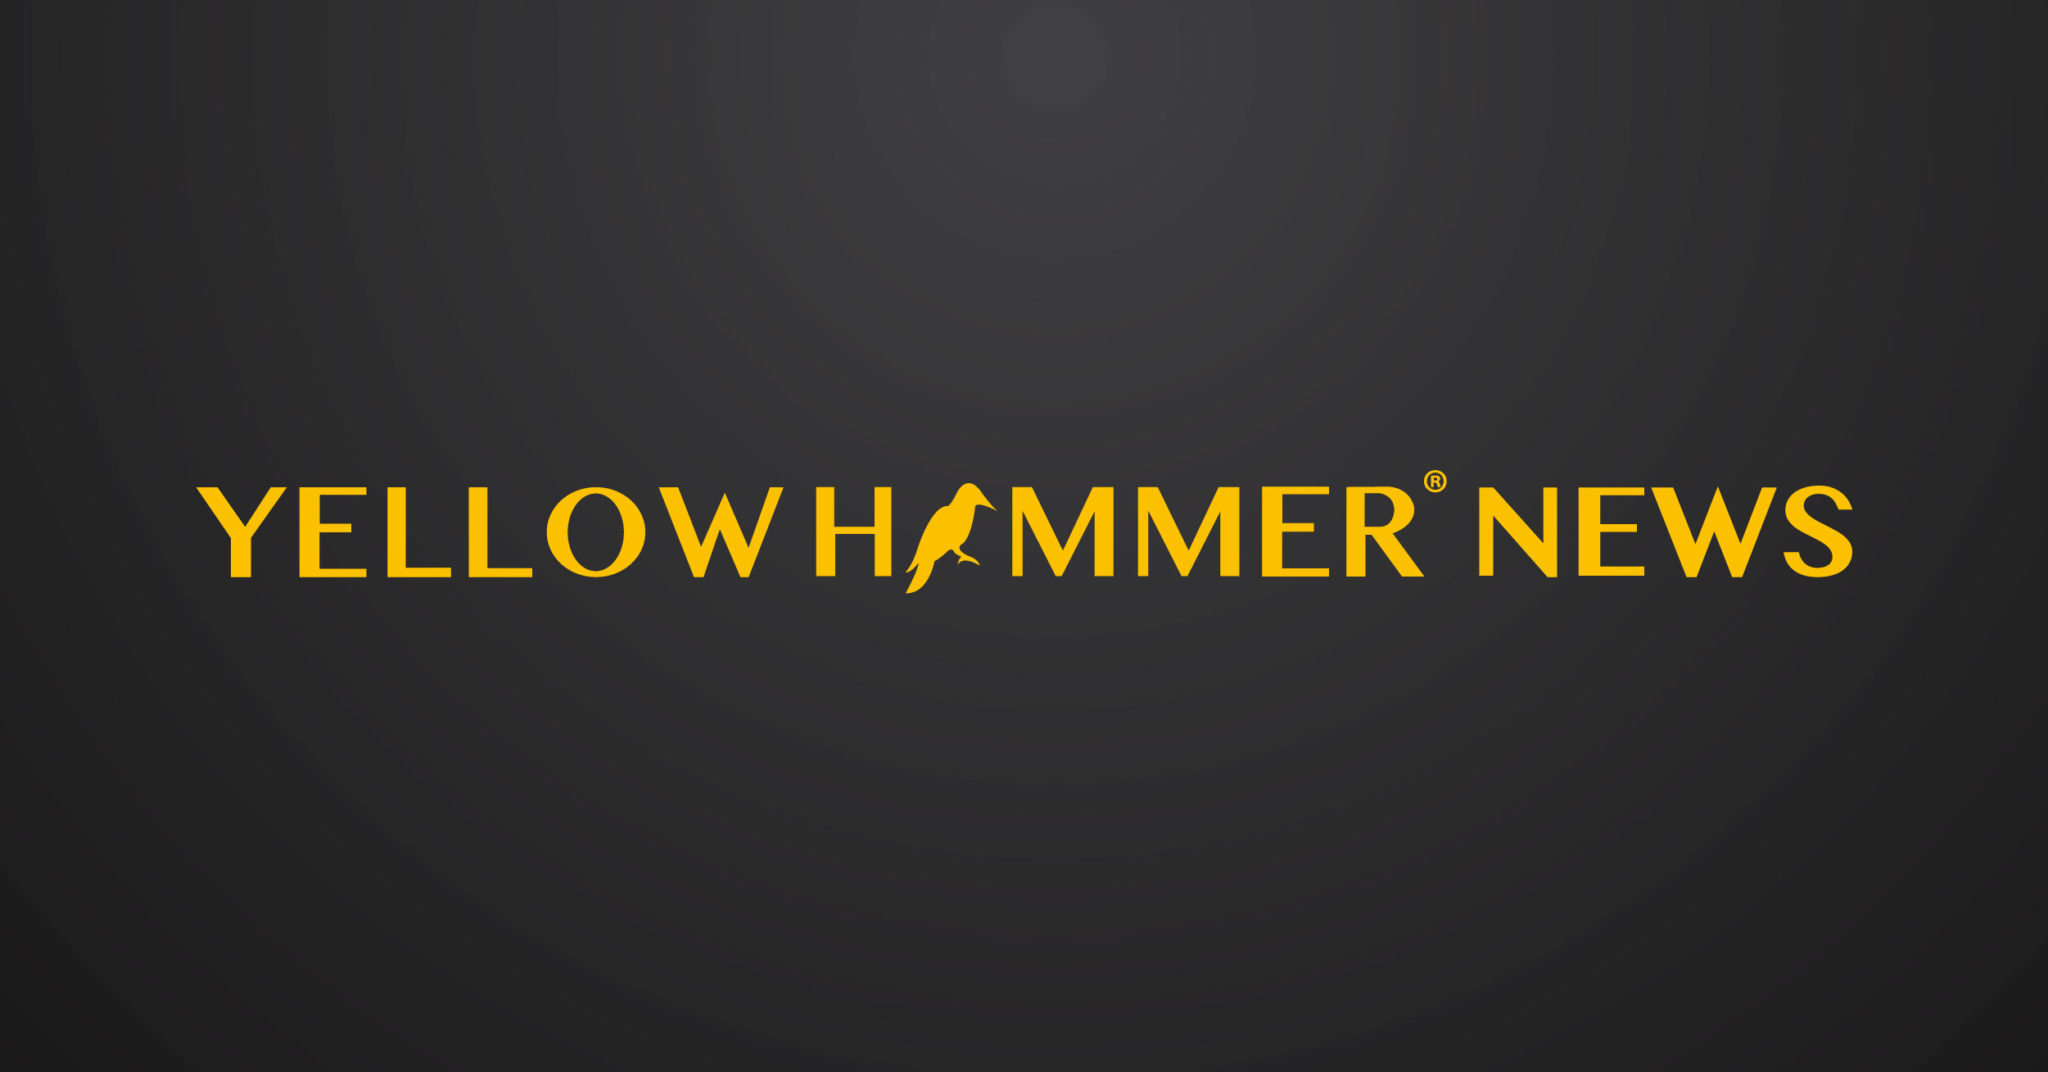 News Archives - Yellowhammer News | Yellowhammer News